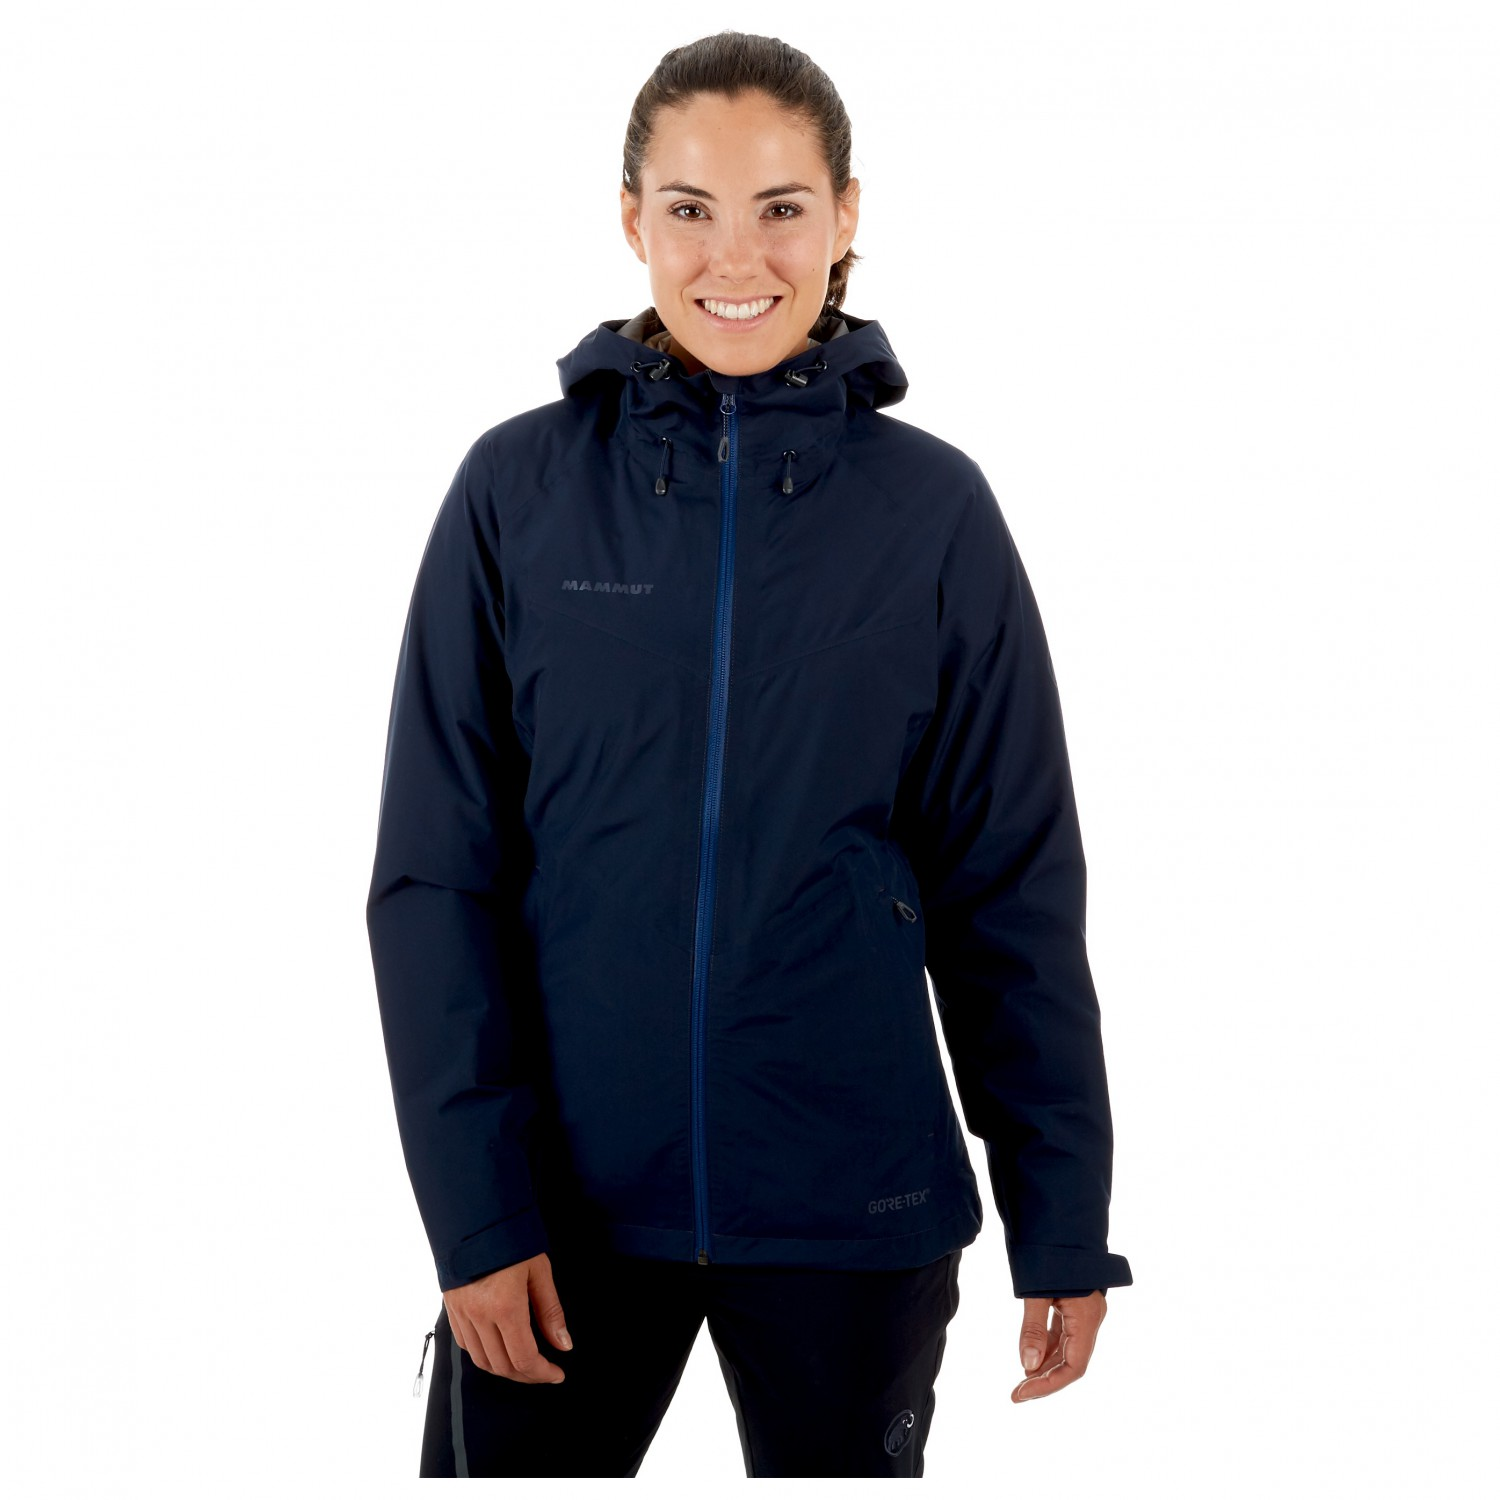 finest selection 7bca6 2e58b Mammut - Women's Convey 3 in 1 HS Hooded Jacket - Pepper / Wing Teal | XS